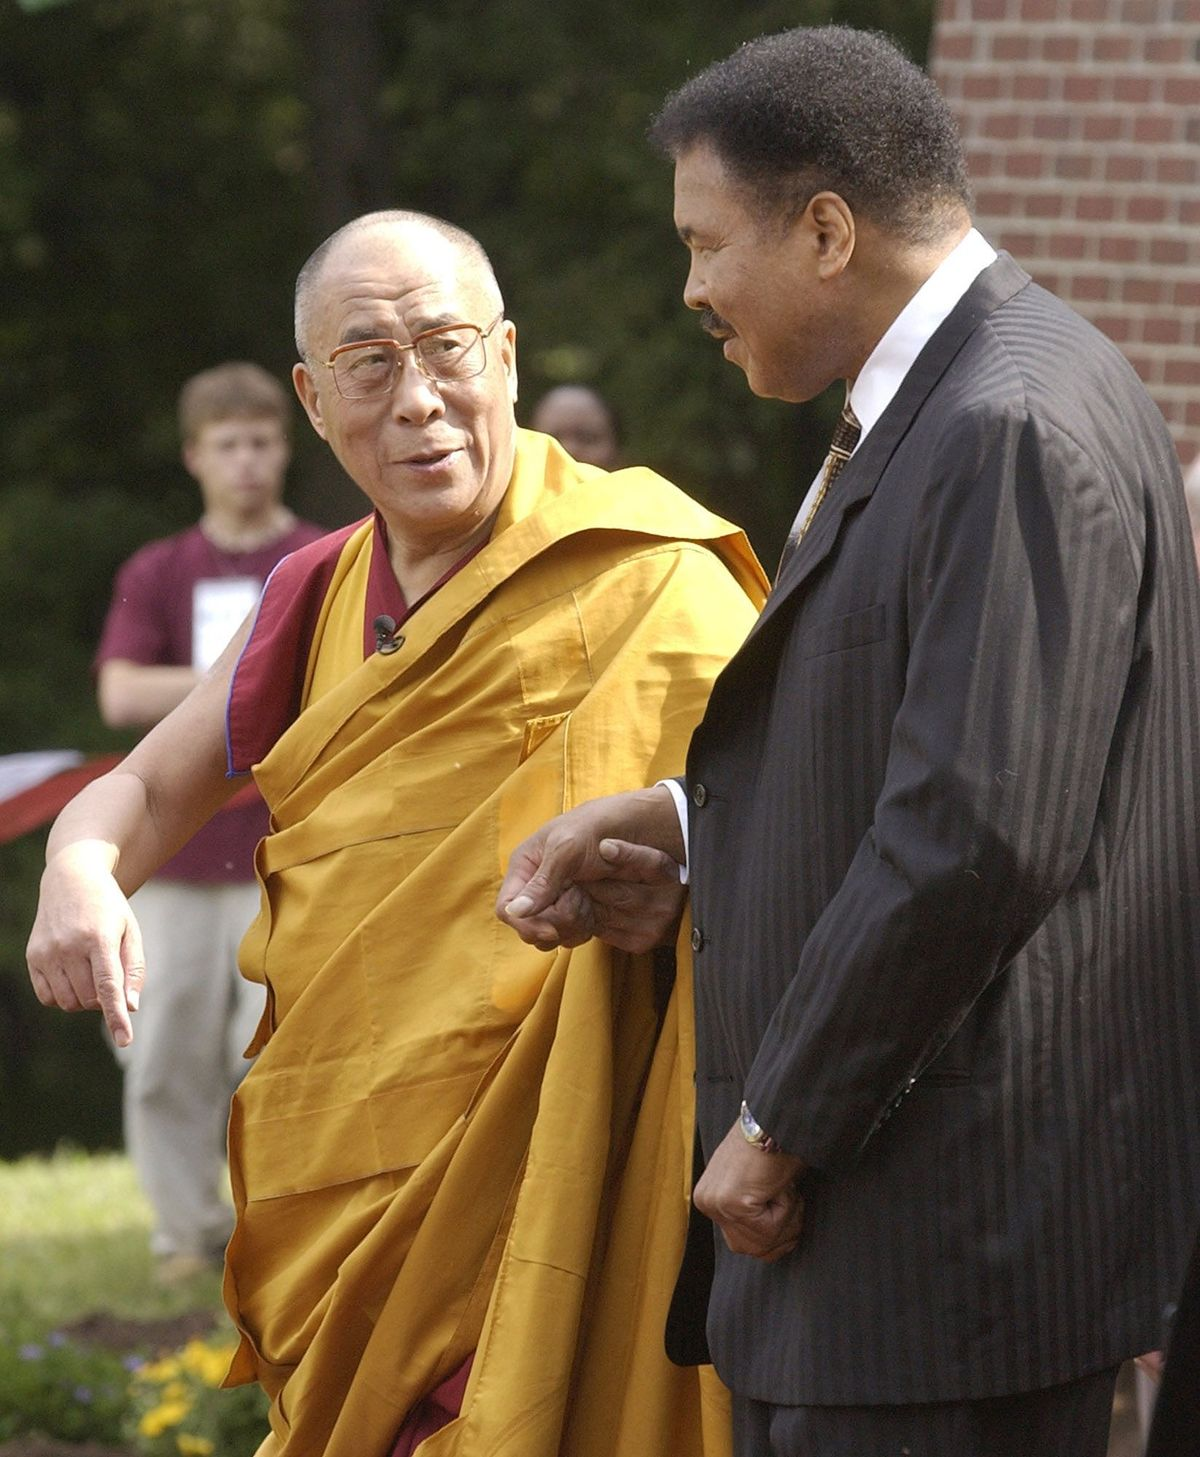 The Dalai Lama walks with Ali as they move towards a new interfaith temple at the Tibetan Cultural Center in Bloomington, Indiana, 2003.